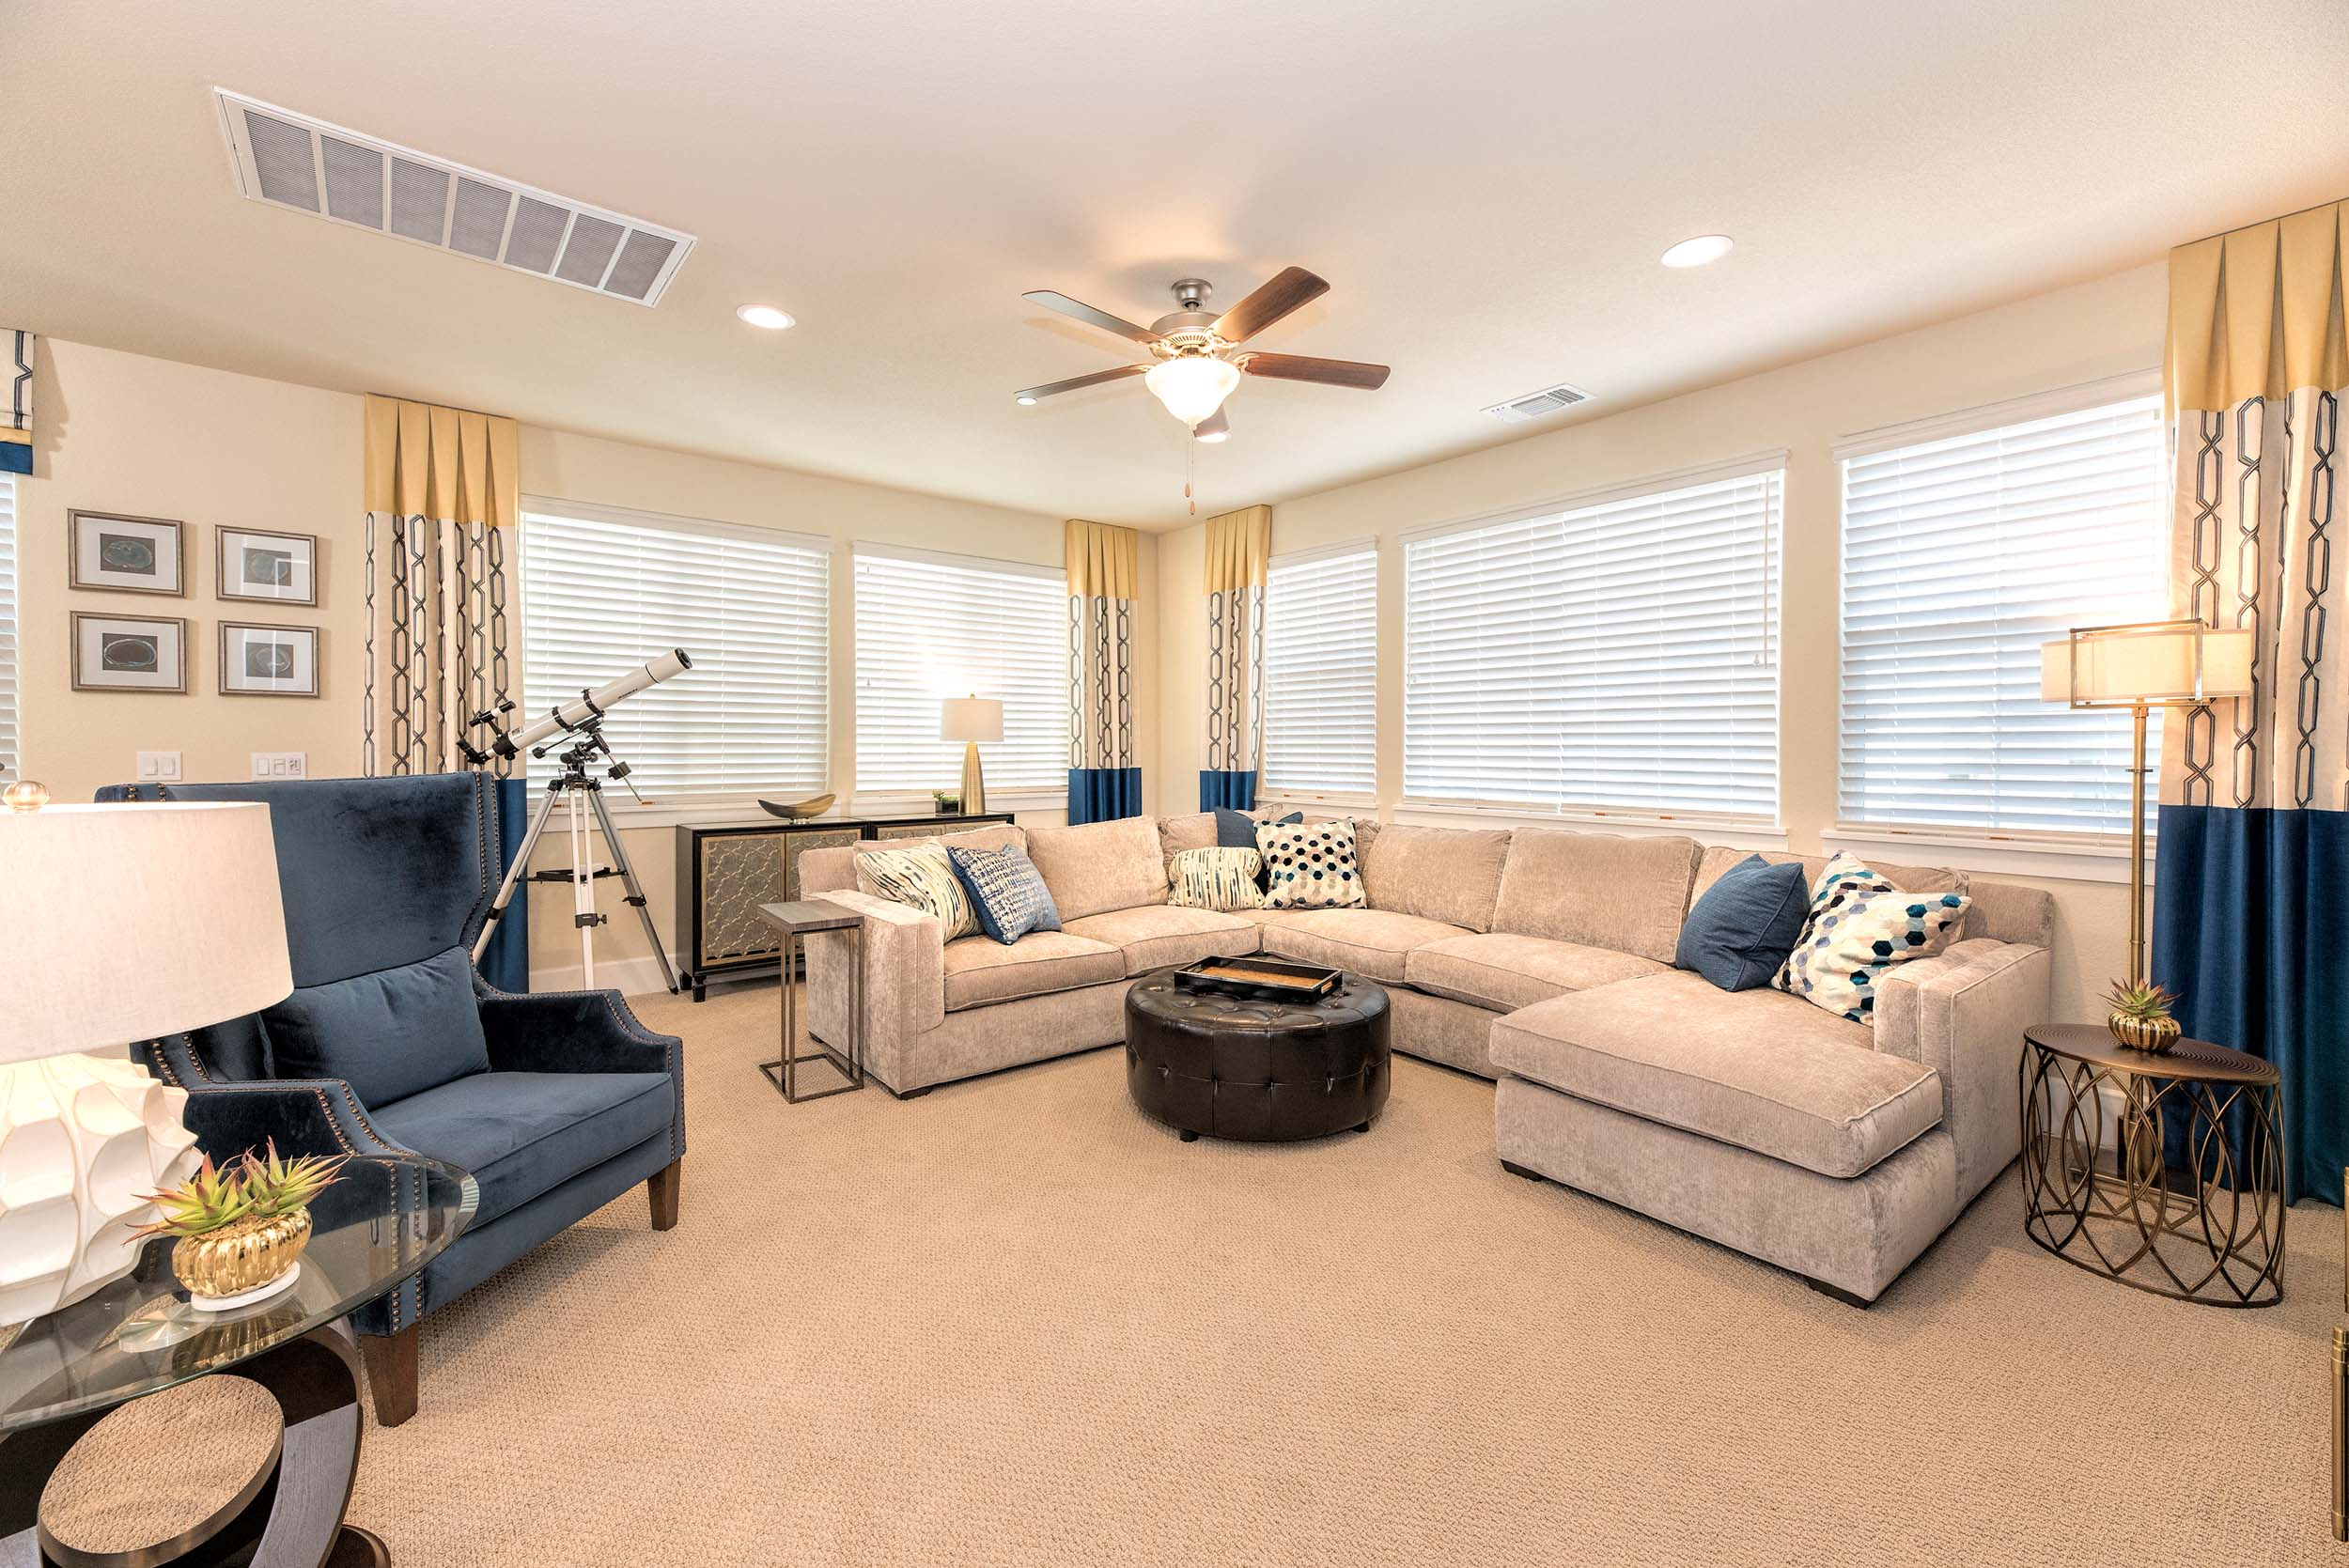 Living room with sofa, large windows and ceiling fan